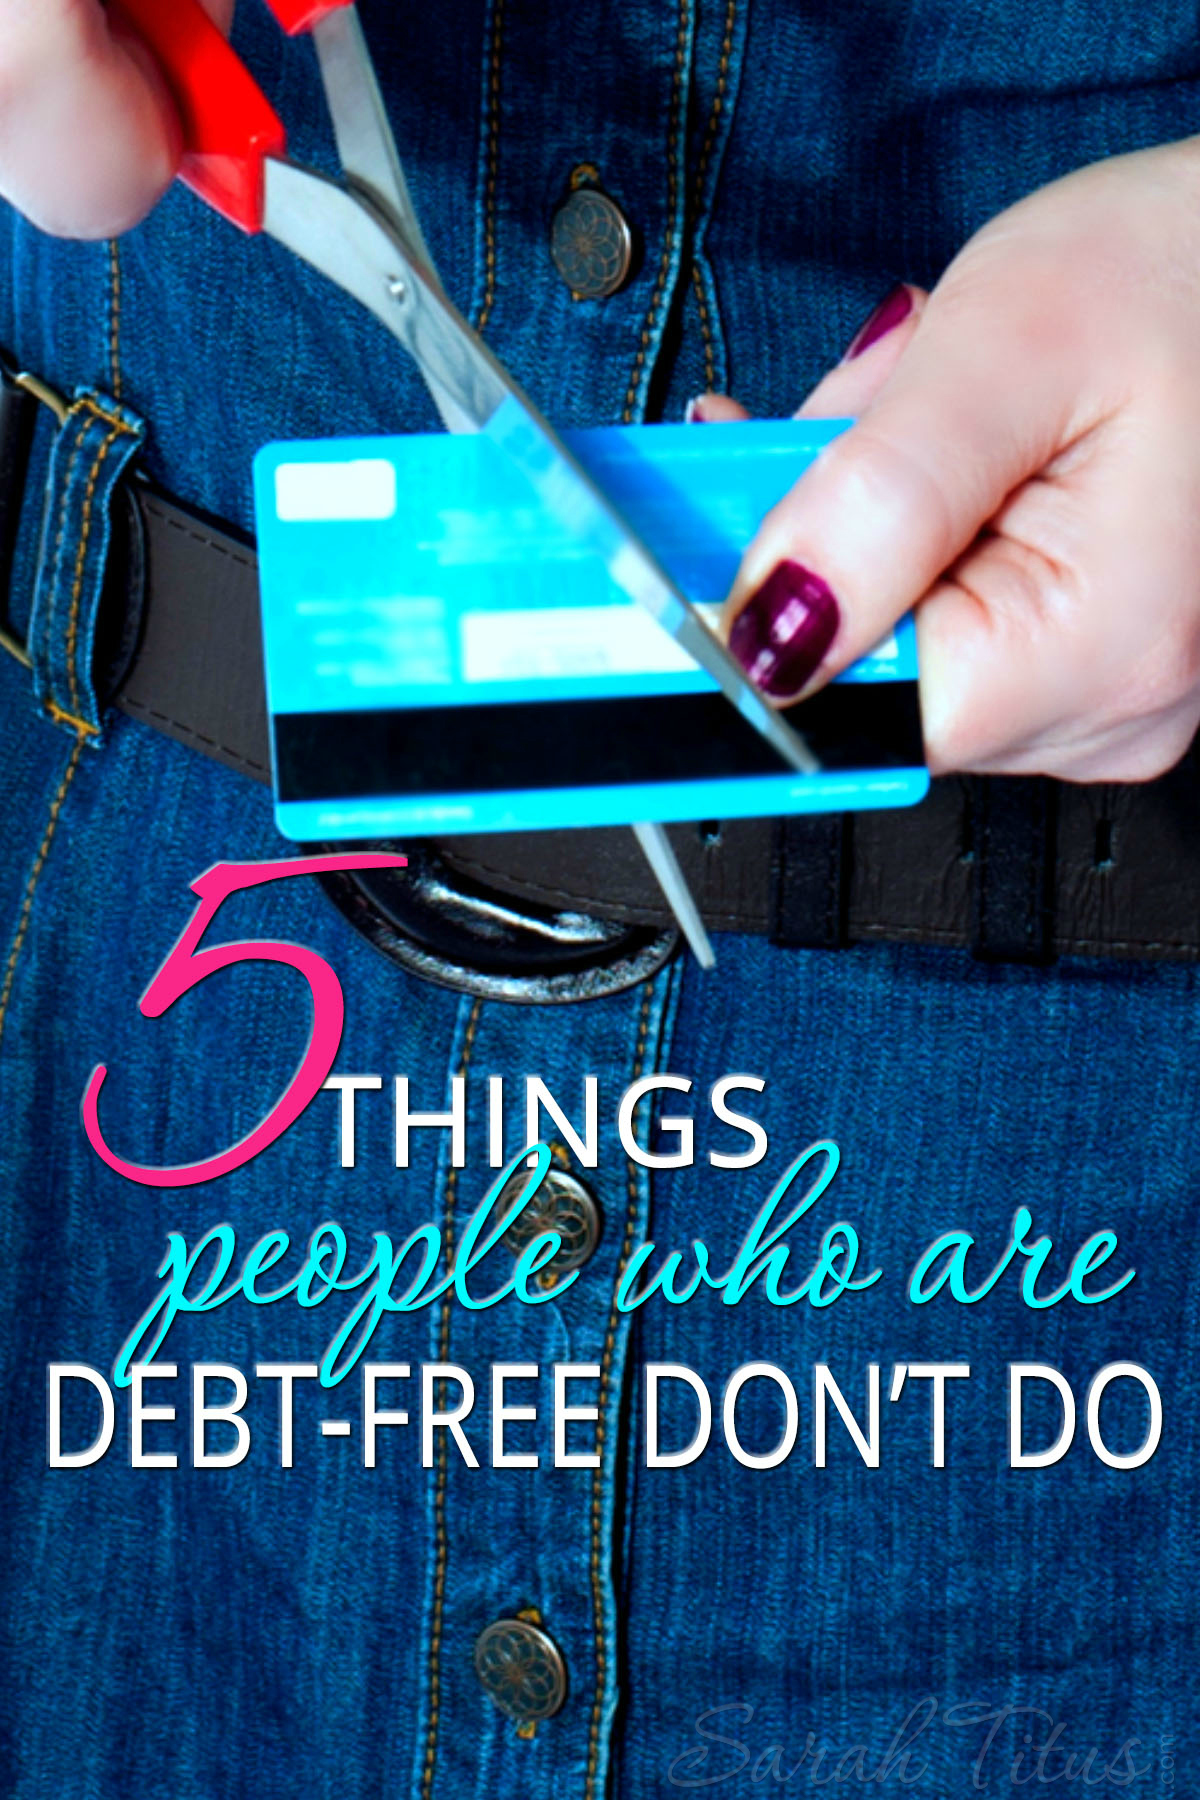 5 Things People Who Are Debt-Free Don't Do